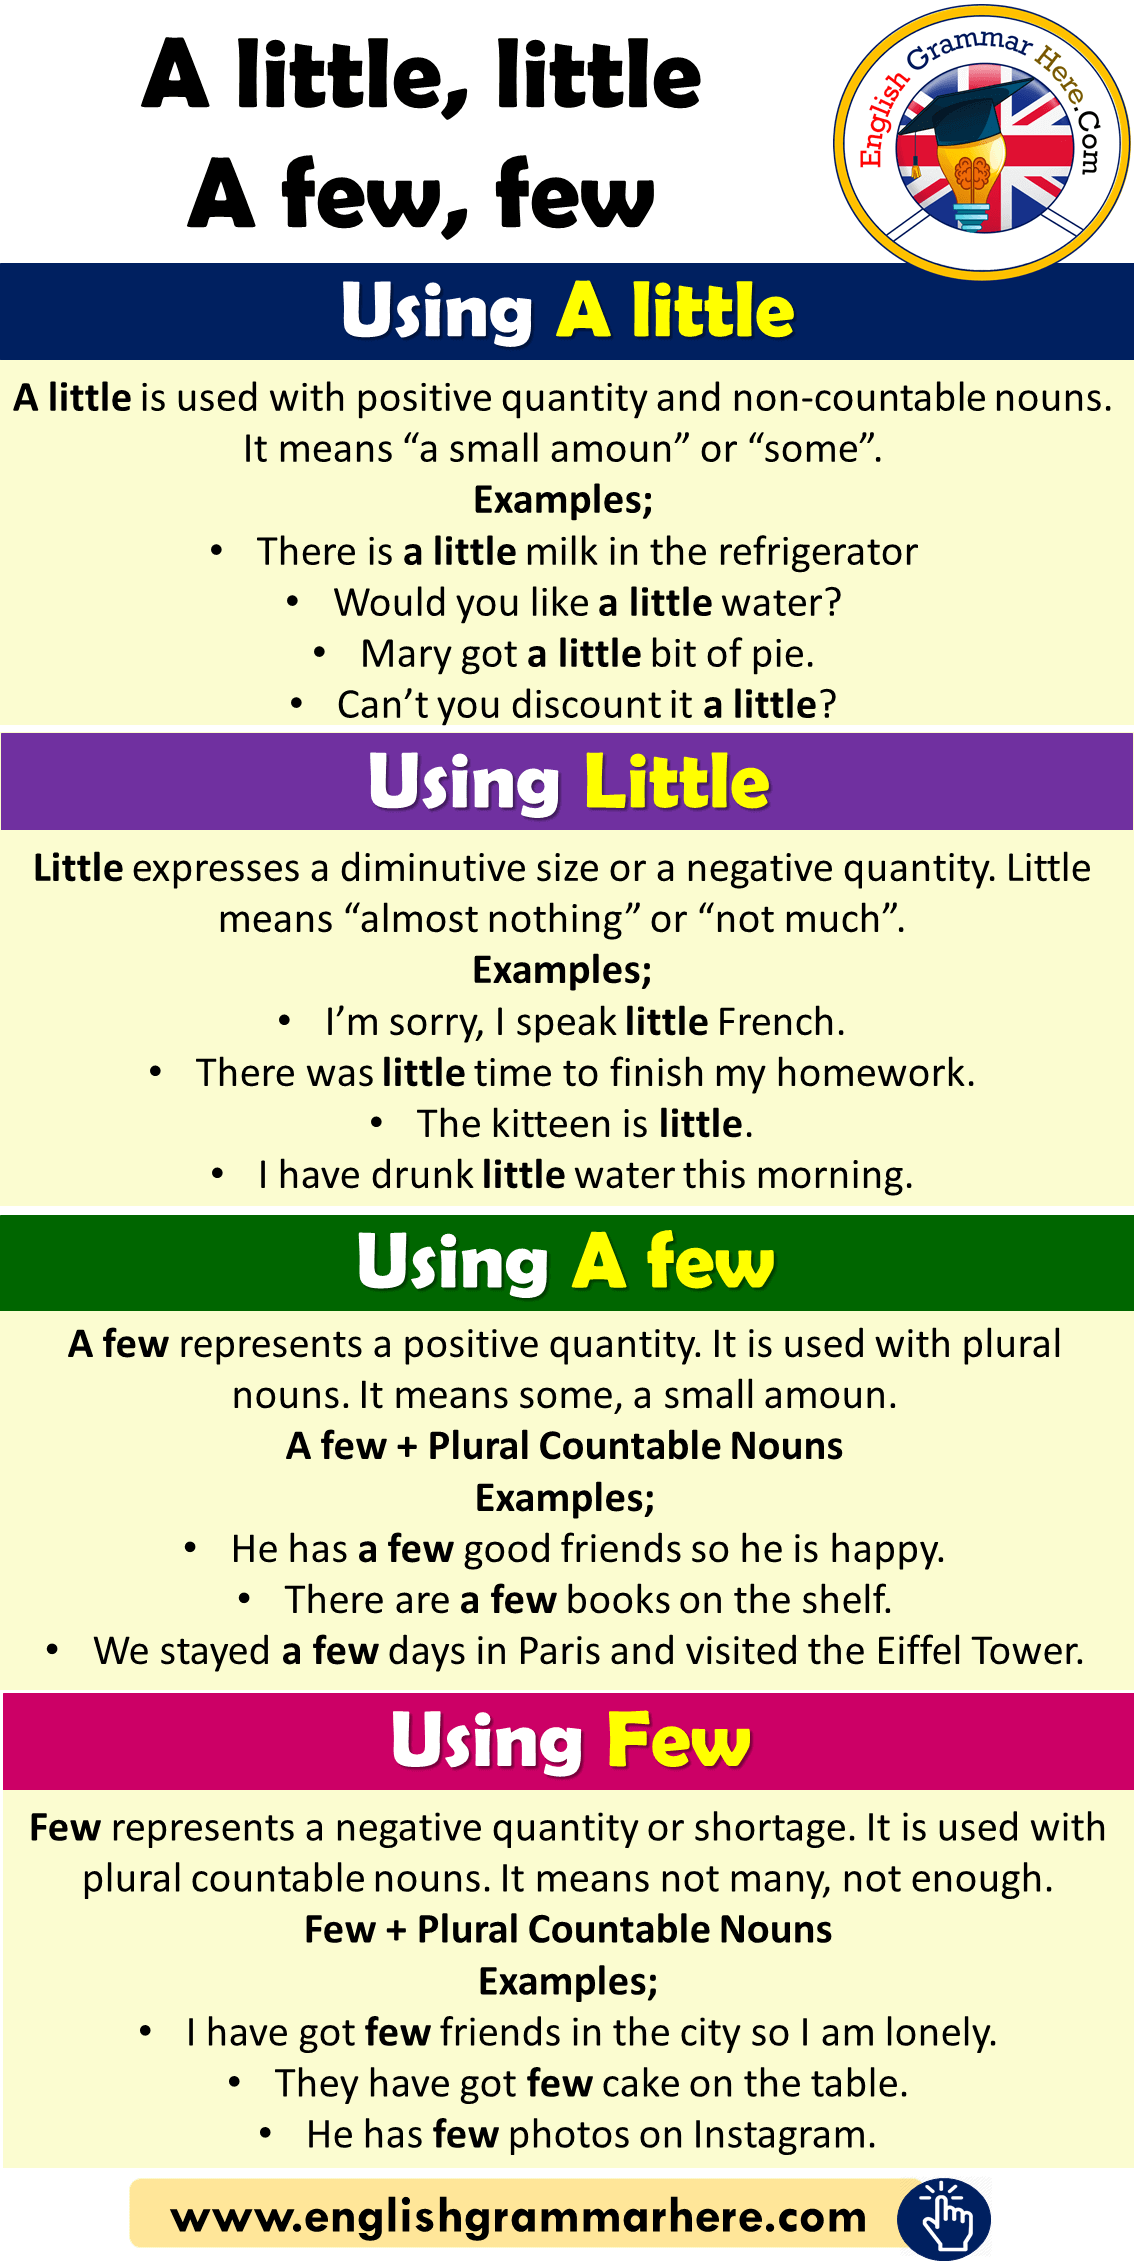 How To Use A little, little A few, few in English, Example Sentences